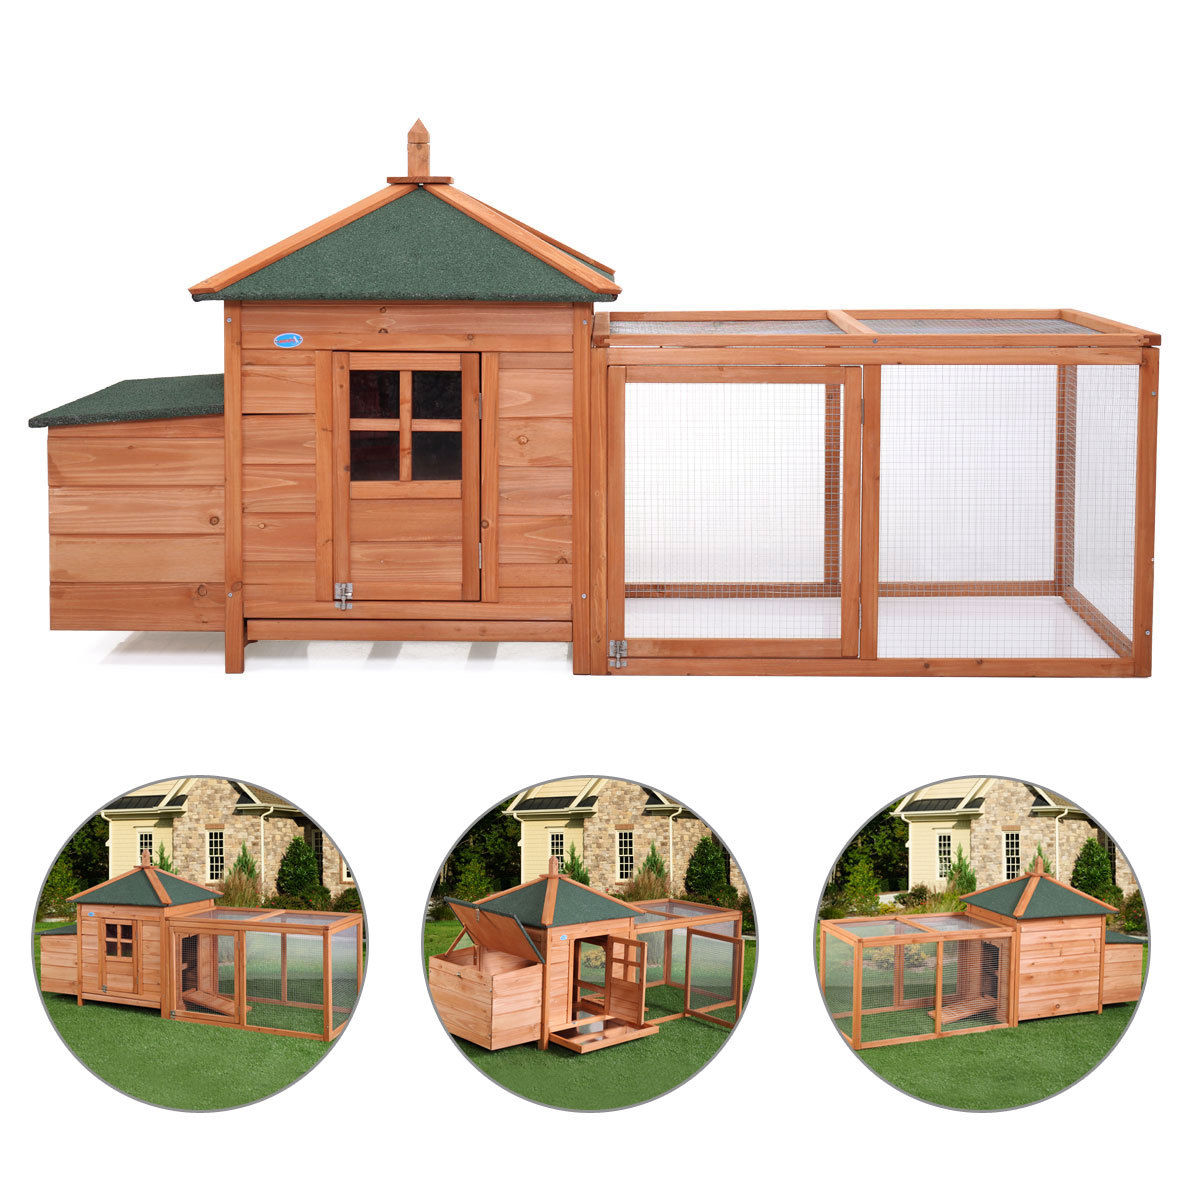 Wooden Chicken Coop Poultry House Nesting Box Run Backyard Rabbit Hunch